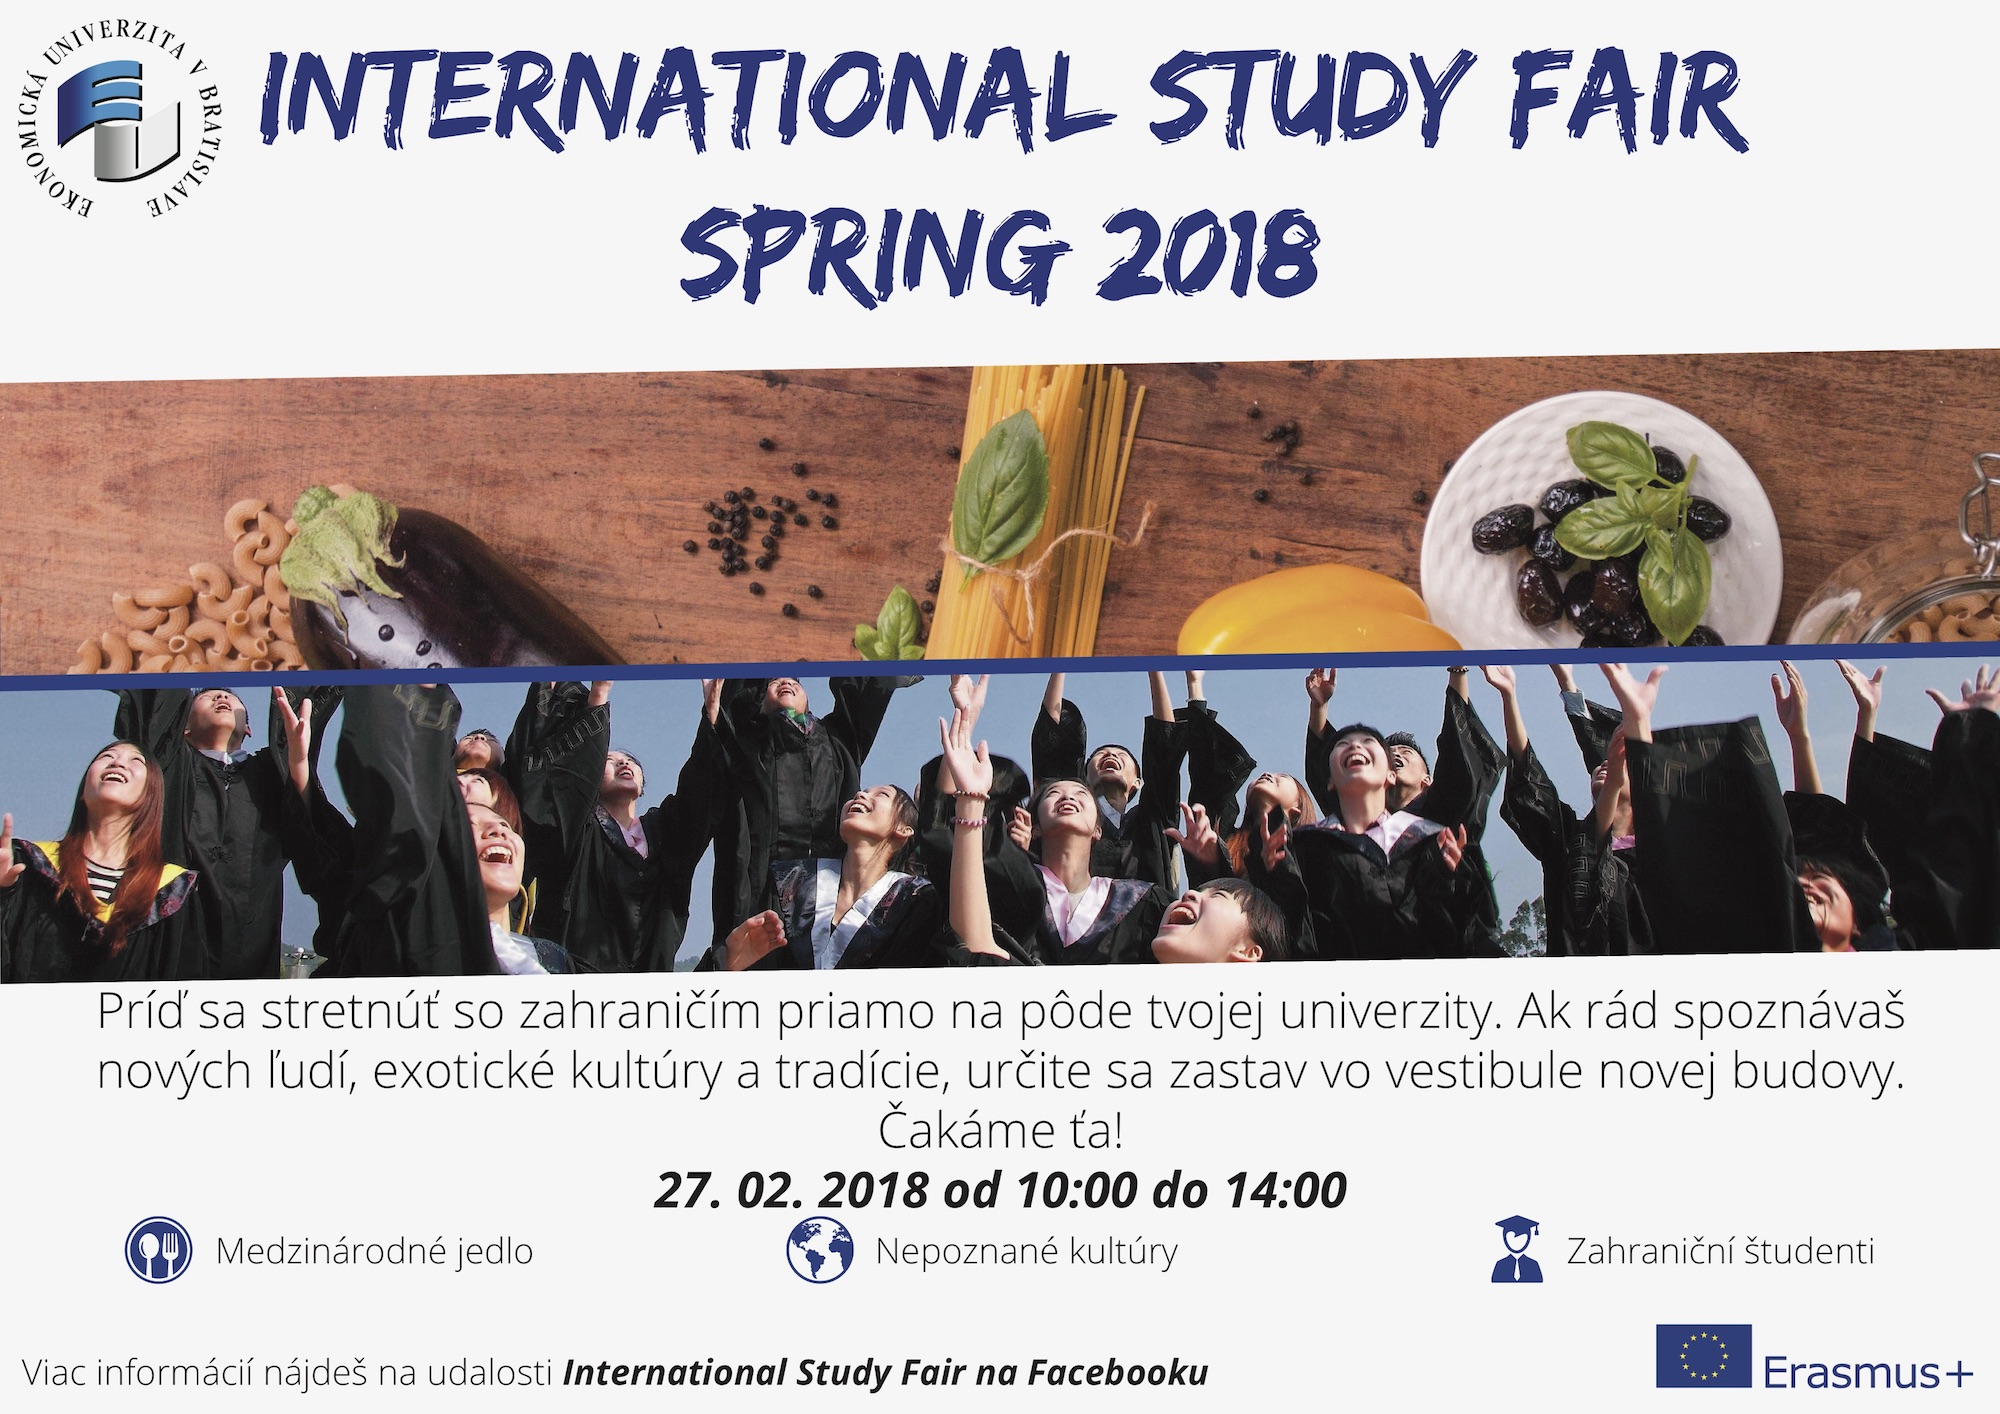 Study_fair-svk_version.jpg